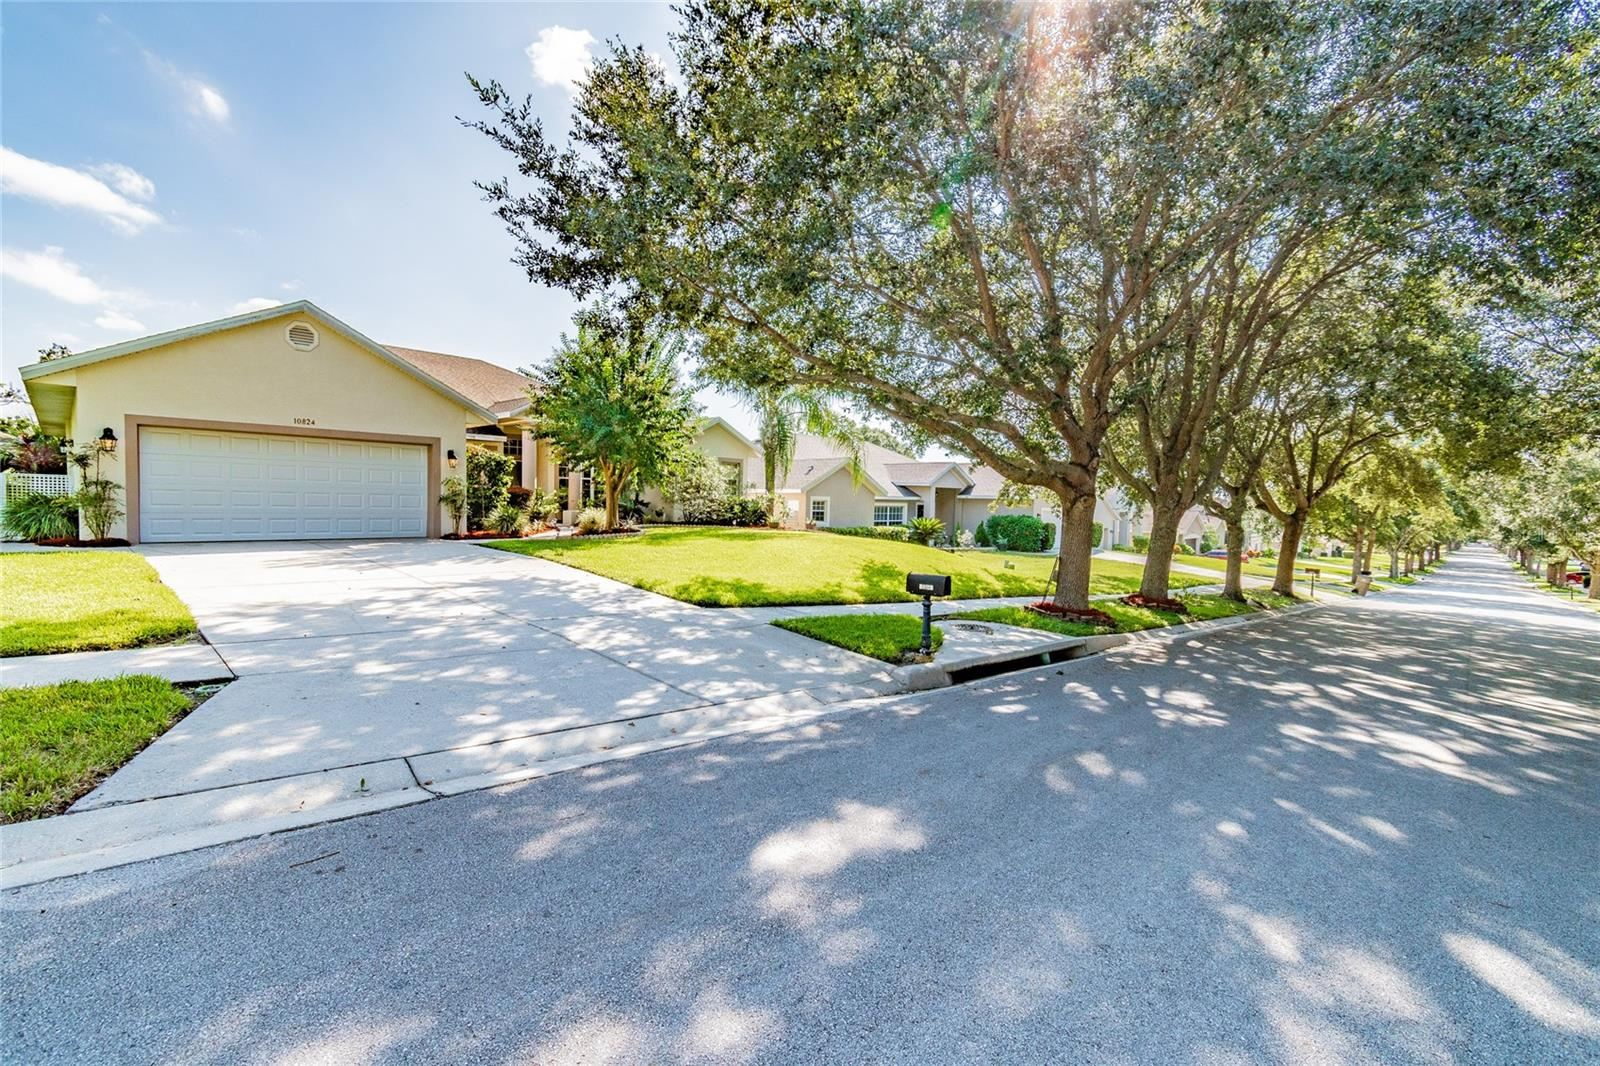 Photo of 10824 MASTERS DRIVE, CLERMONT, FL 34711 (MLS # O5975529)